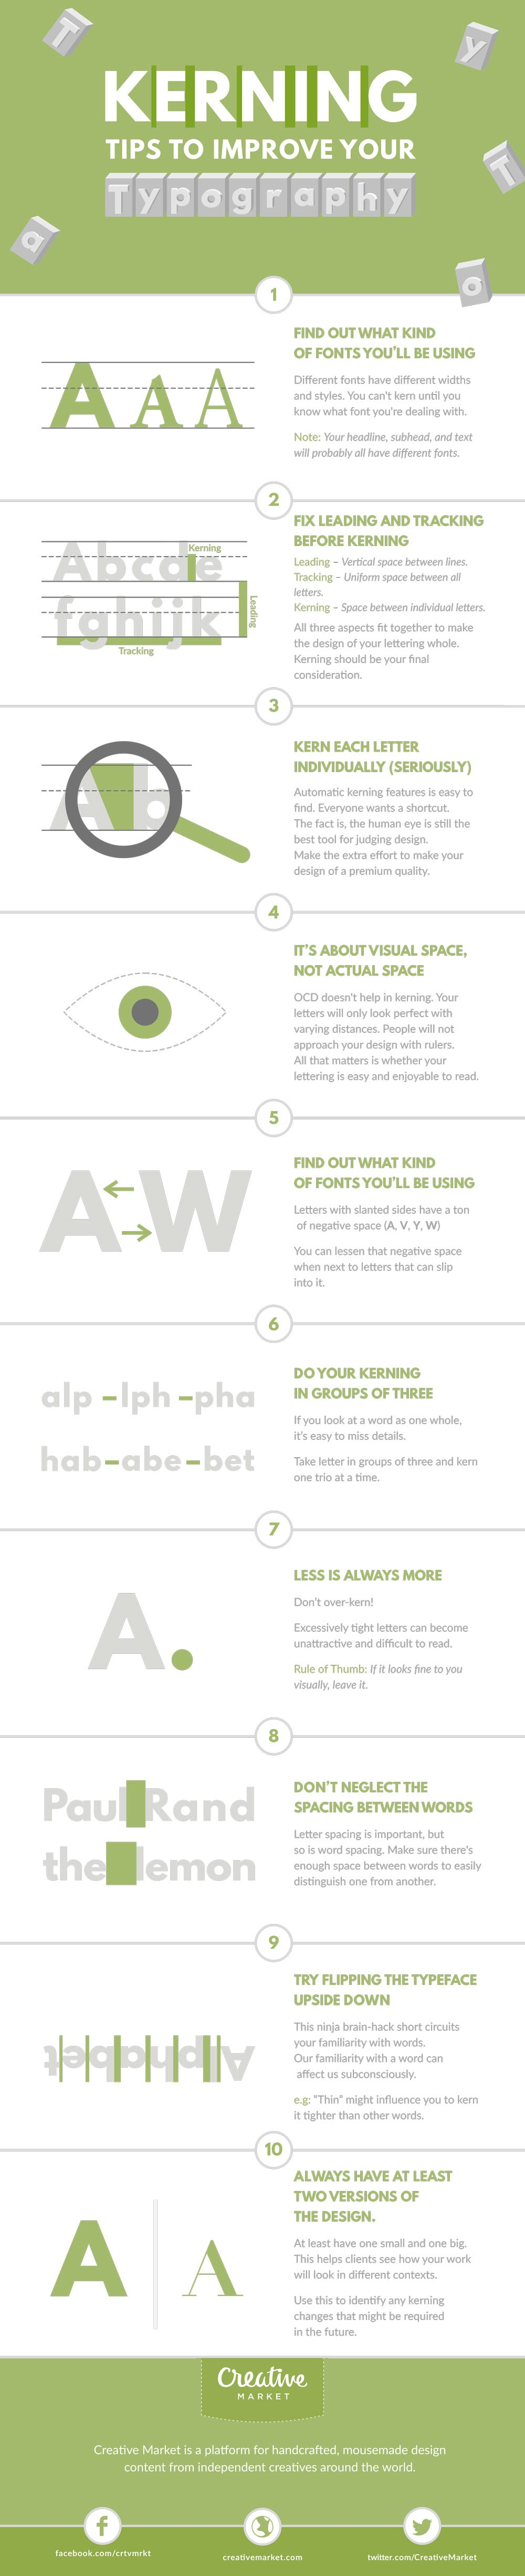 Kerning Tips to Improve Your Typography - #infographic